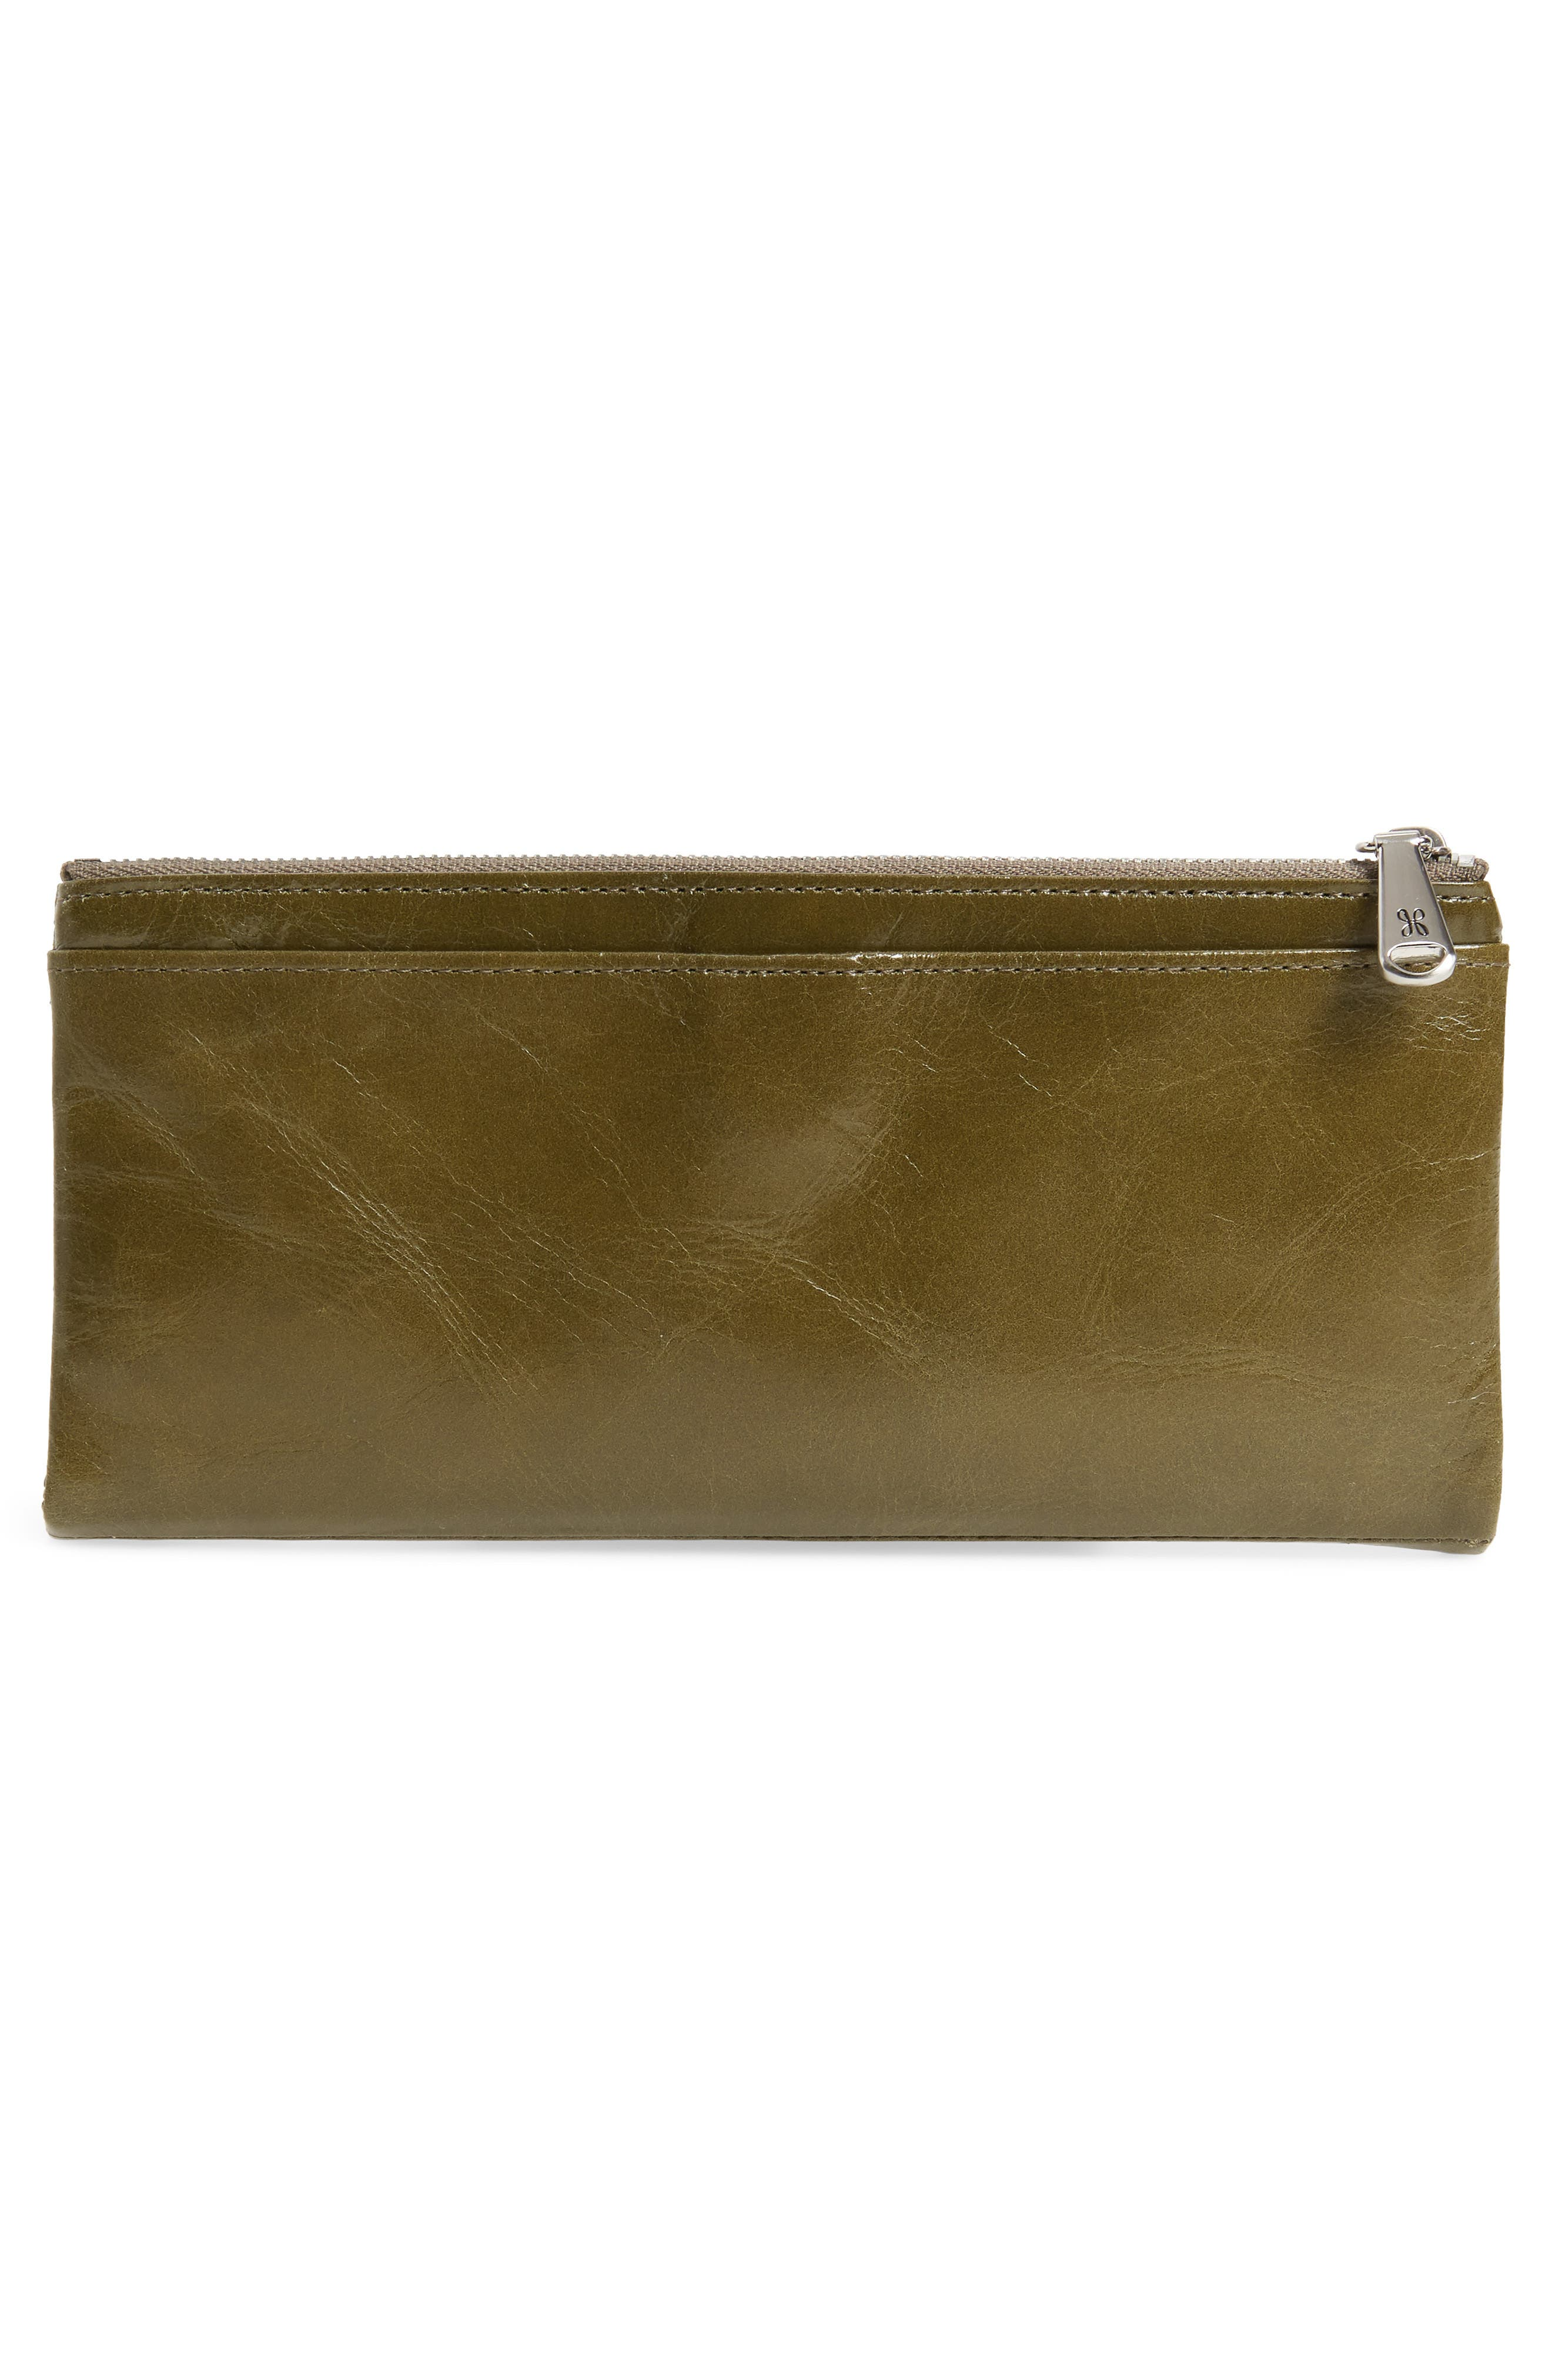 Taylor Glazed Wallet,                             Alternate thumbnail 3, color,                             WILLOW